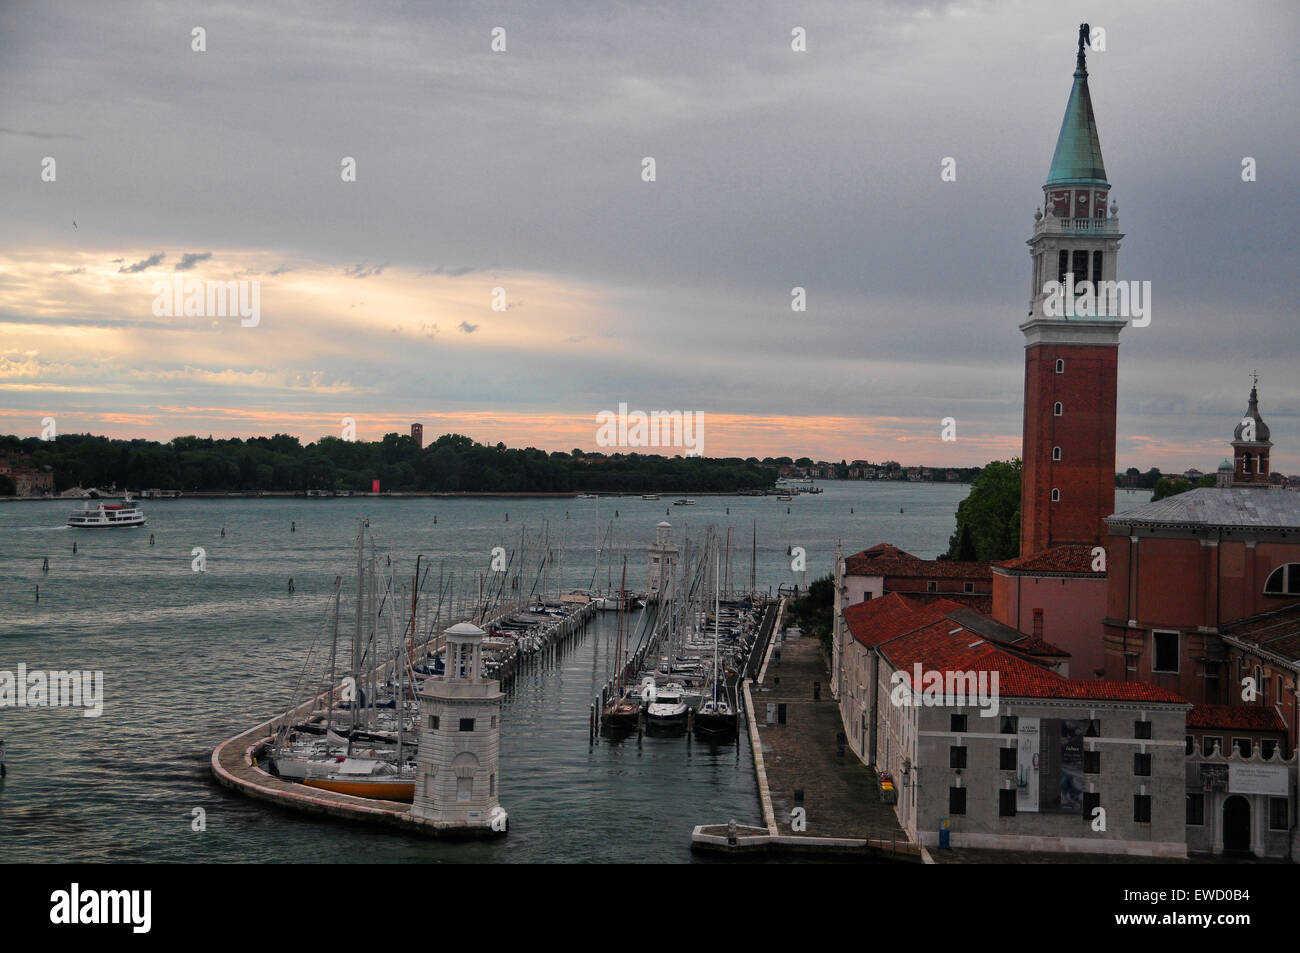 There are many popular sites to see along Venice Italy's canals and harbors such as San Giorgio Basilica. - Stock Image